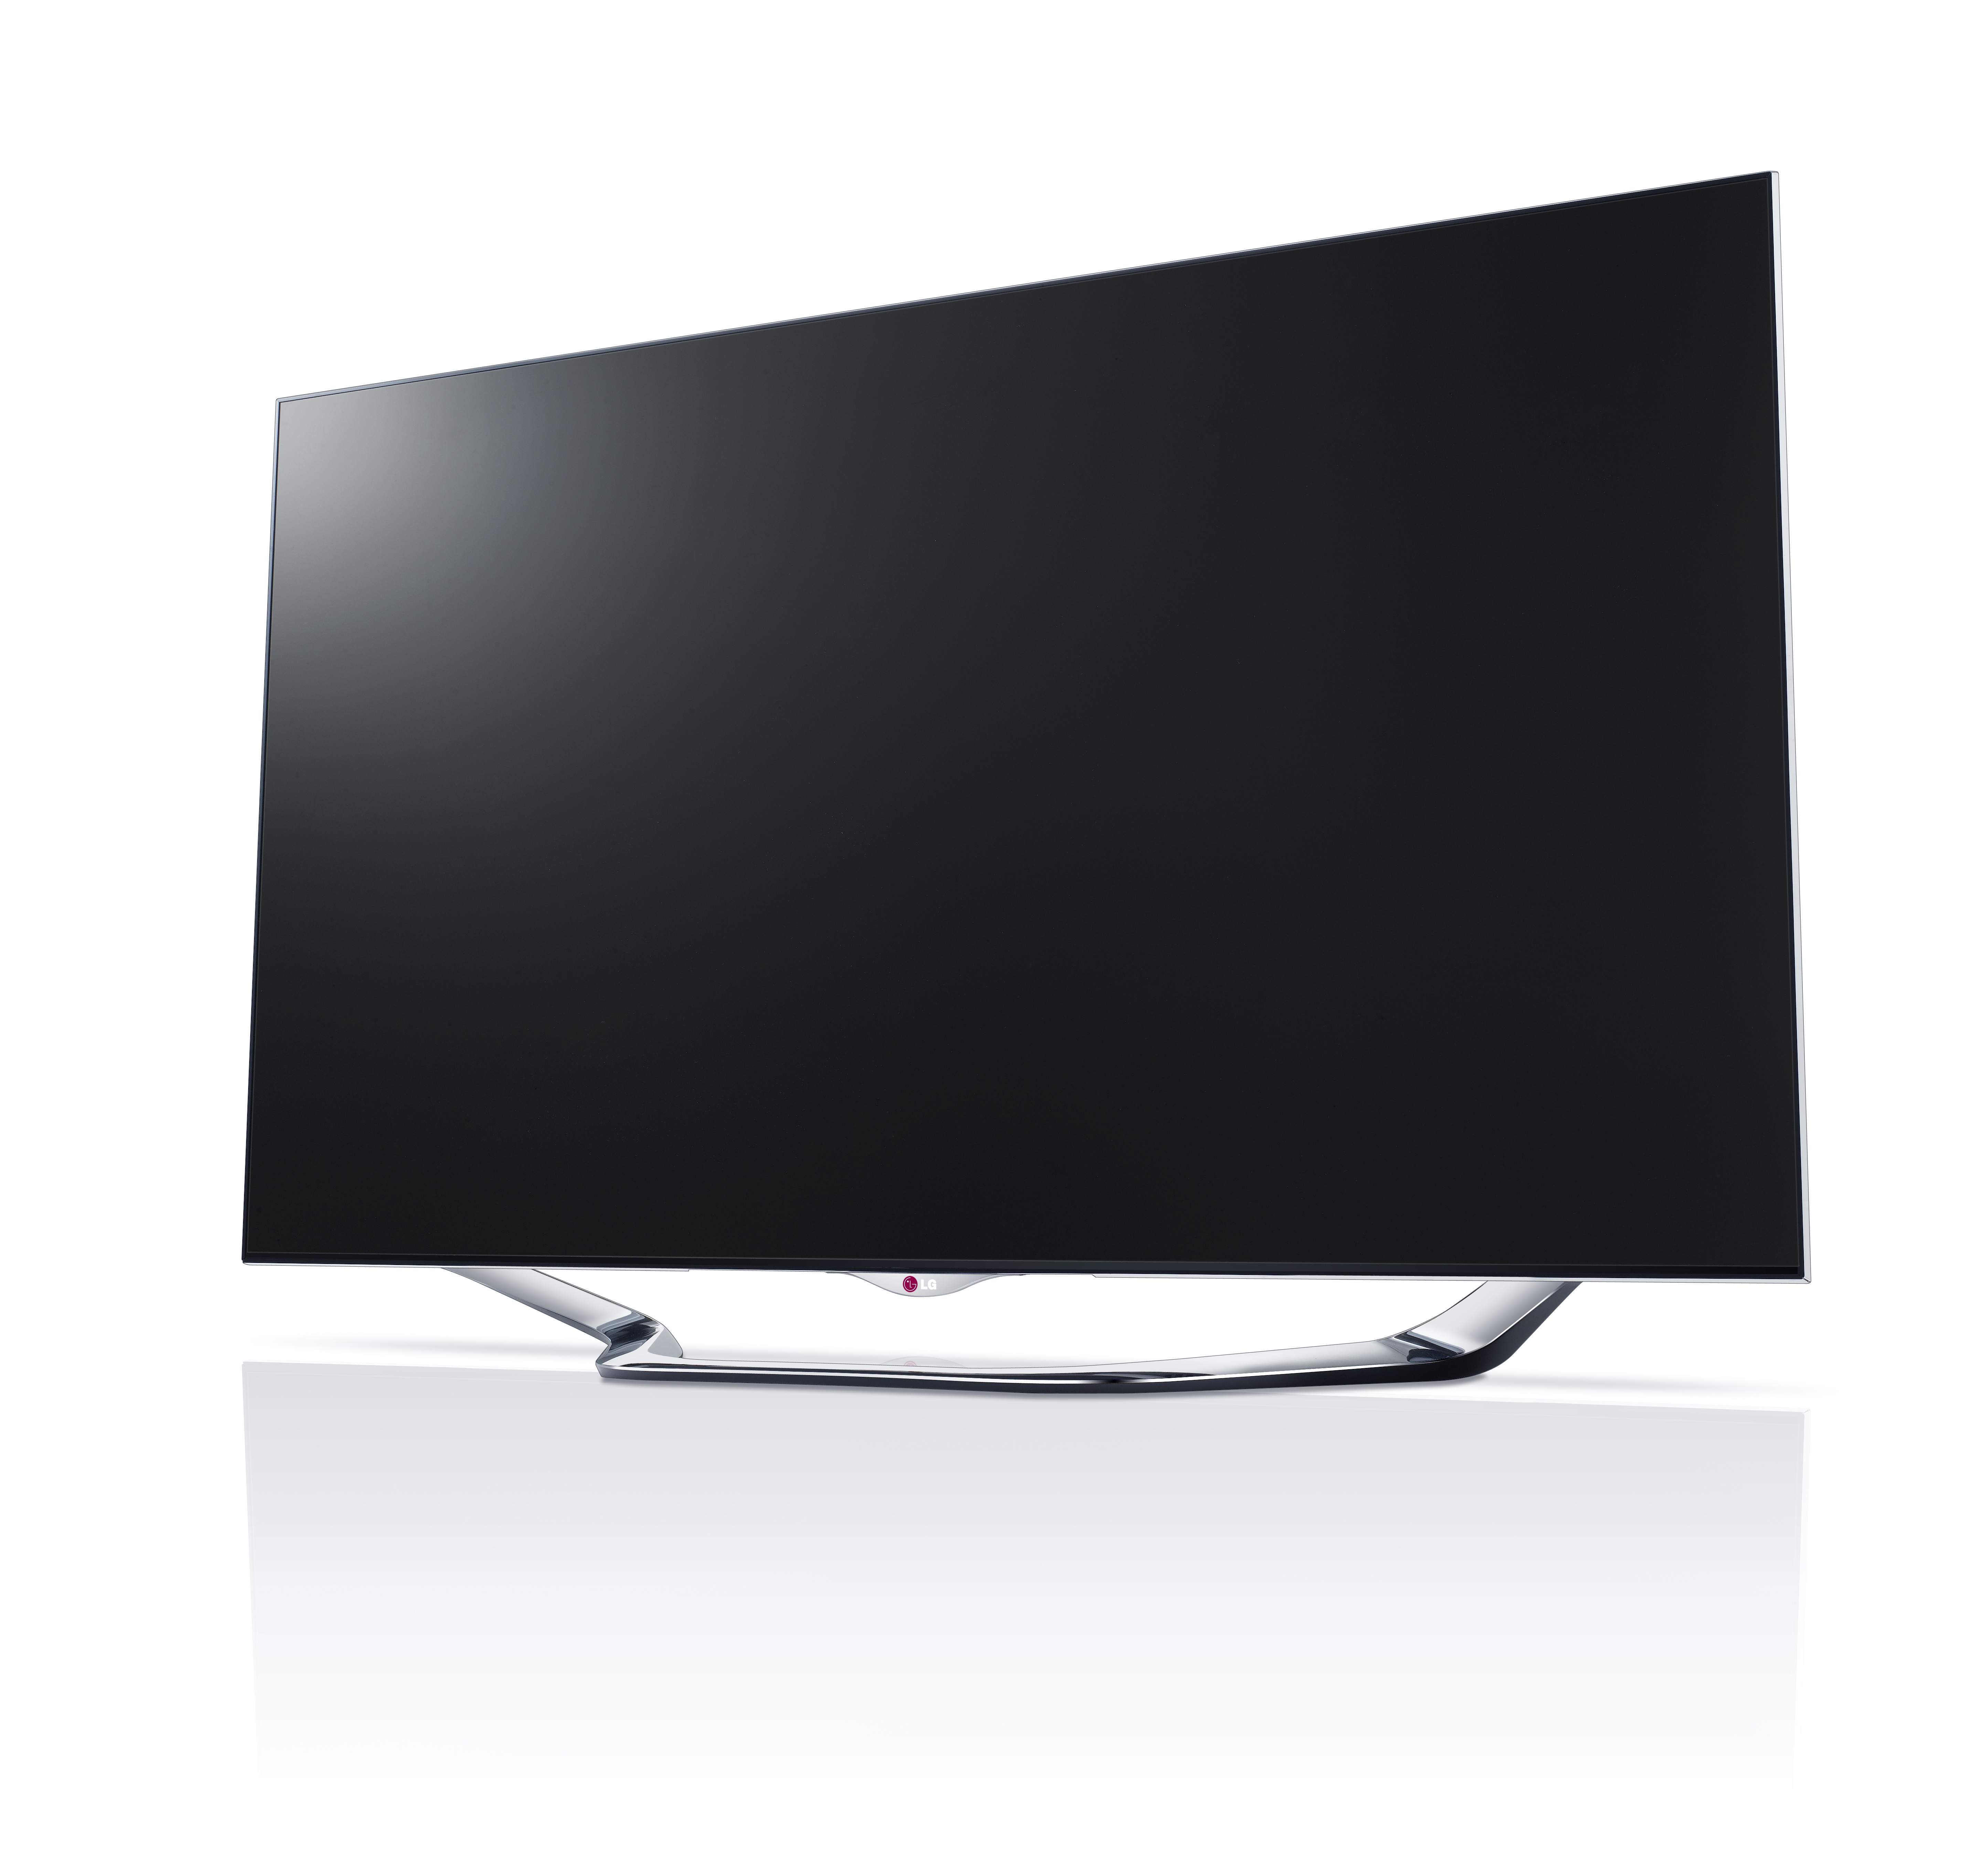 A right-side view of LG IPS monitor ColorPrime model EA83